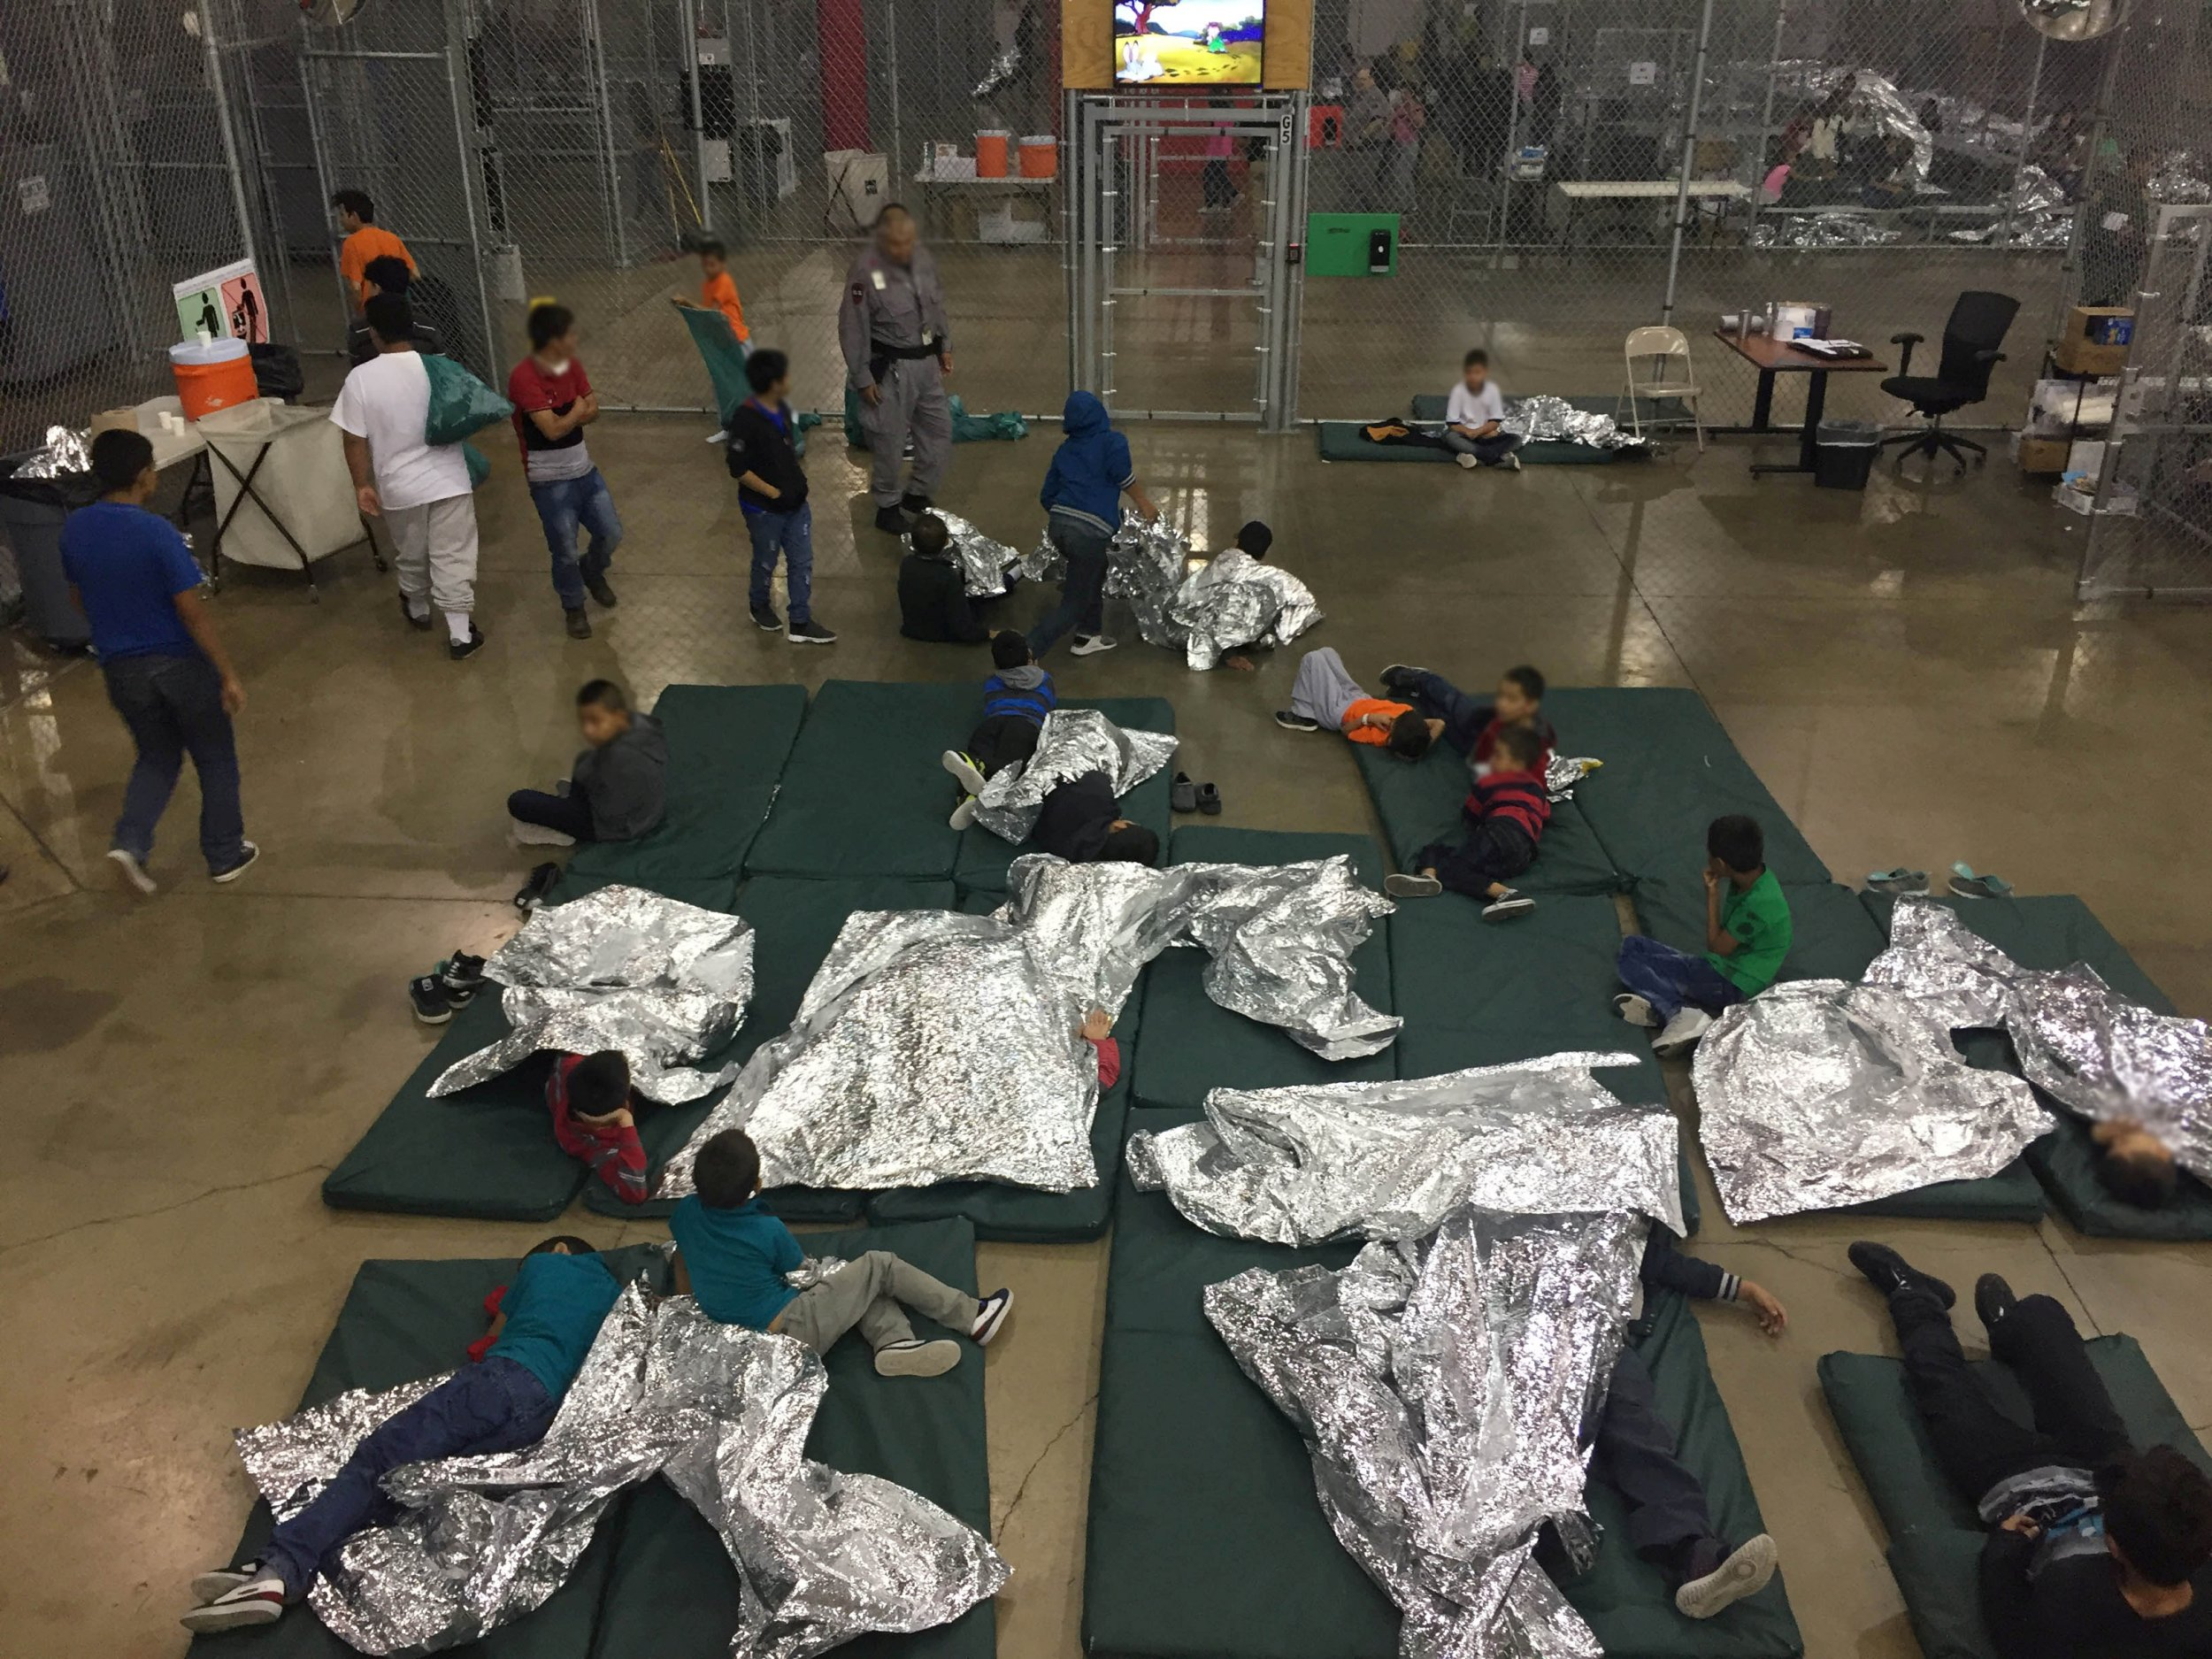 Child Detention Center